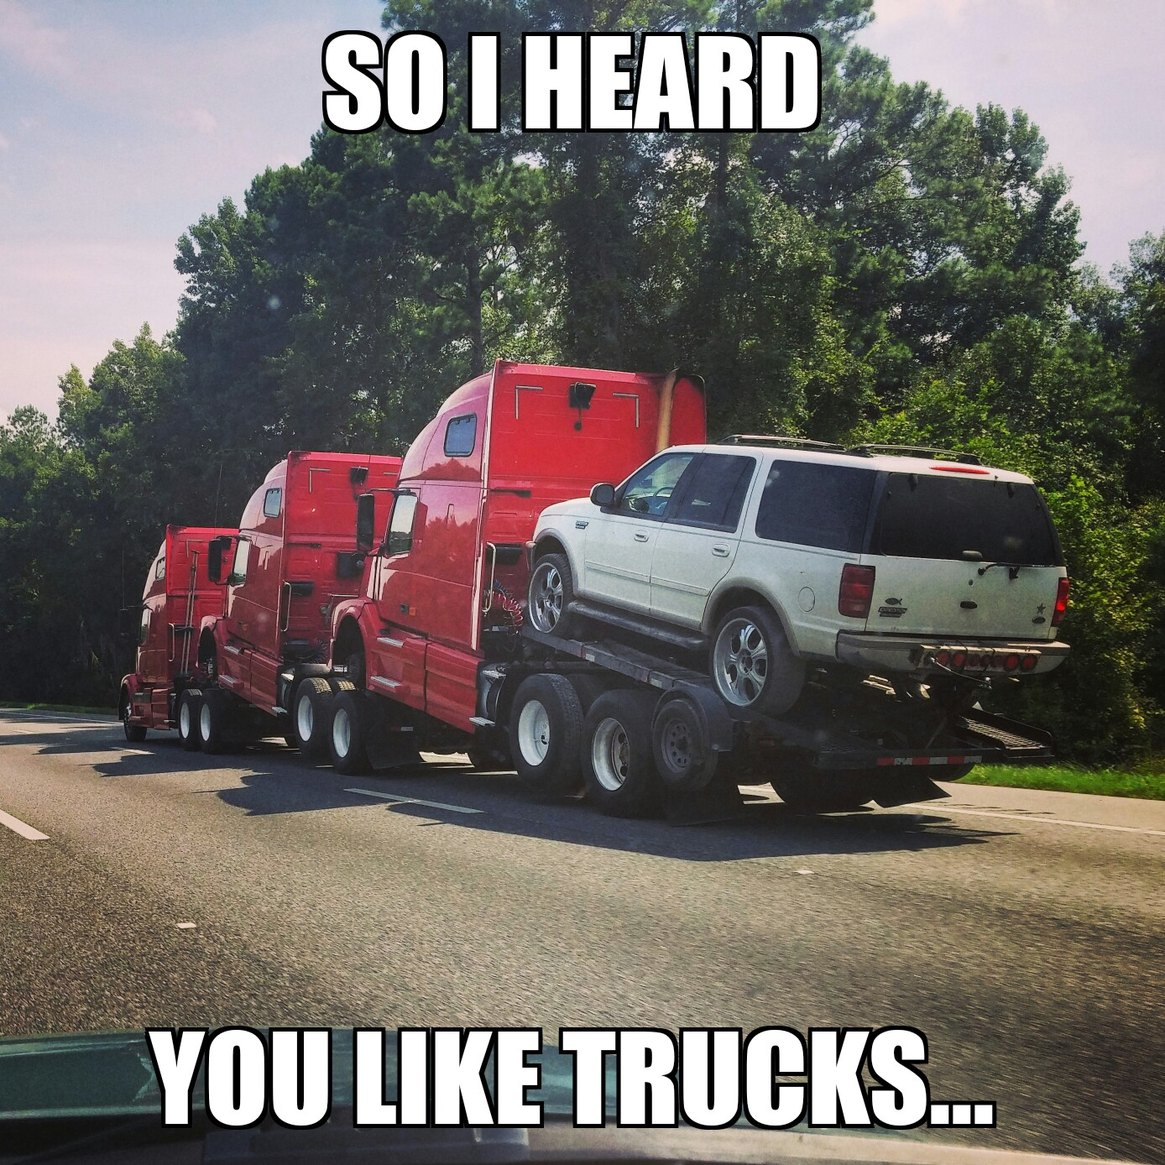 so you can truck your truck while you truck meme by dannyboyex